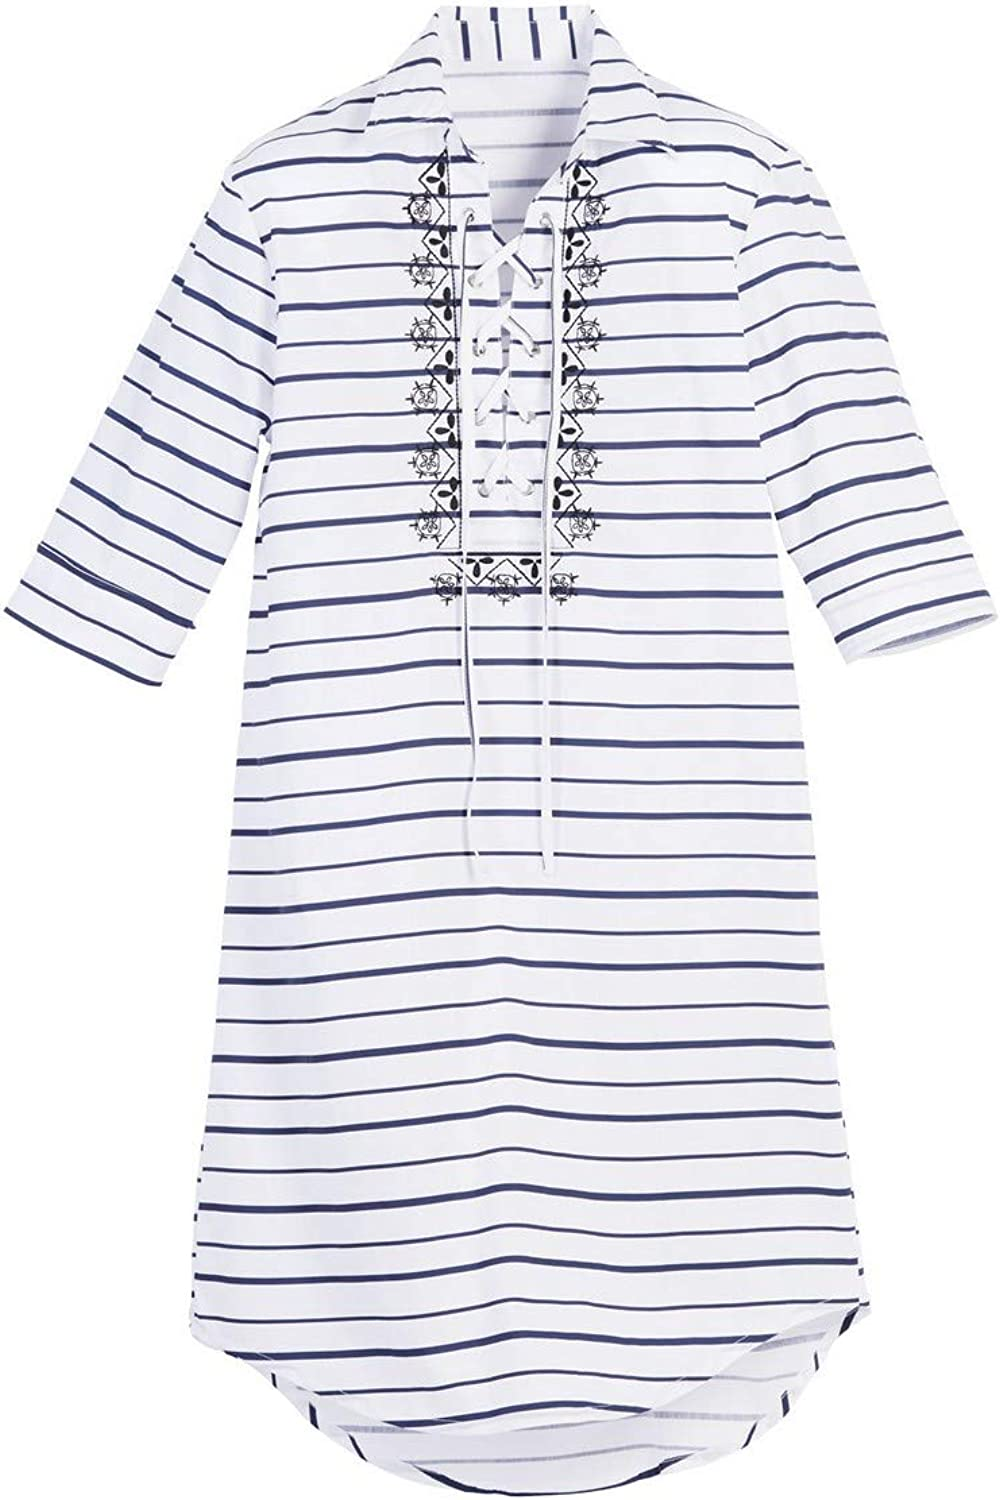 Beachcombers Women Cotton Polyester Striped Caftan Cover Up White Extra Large